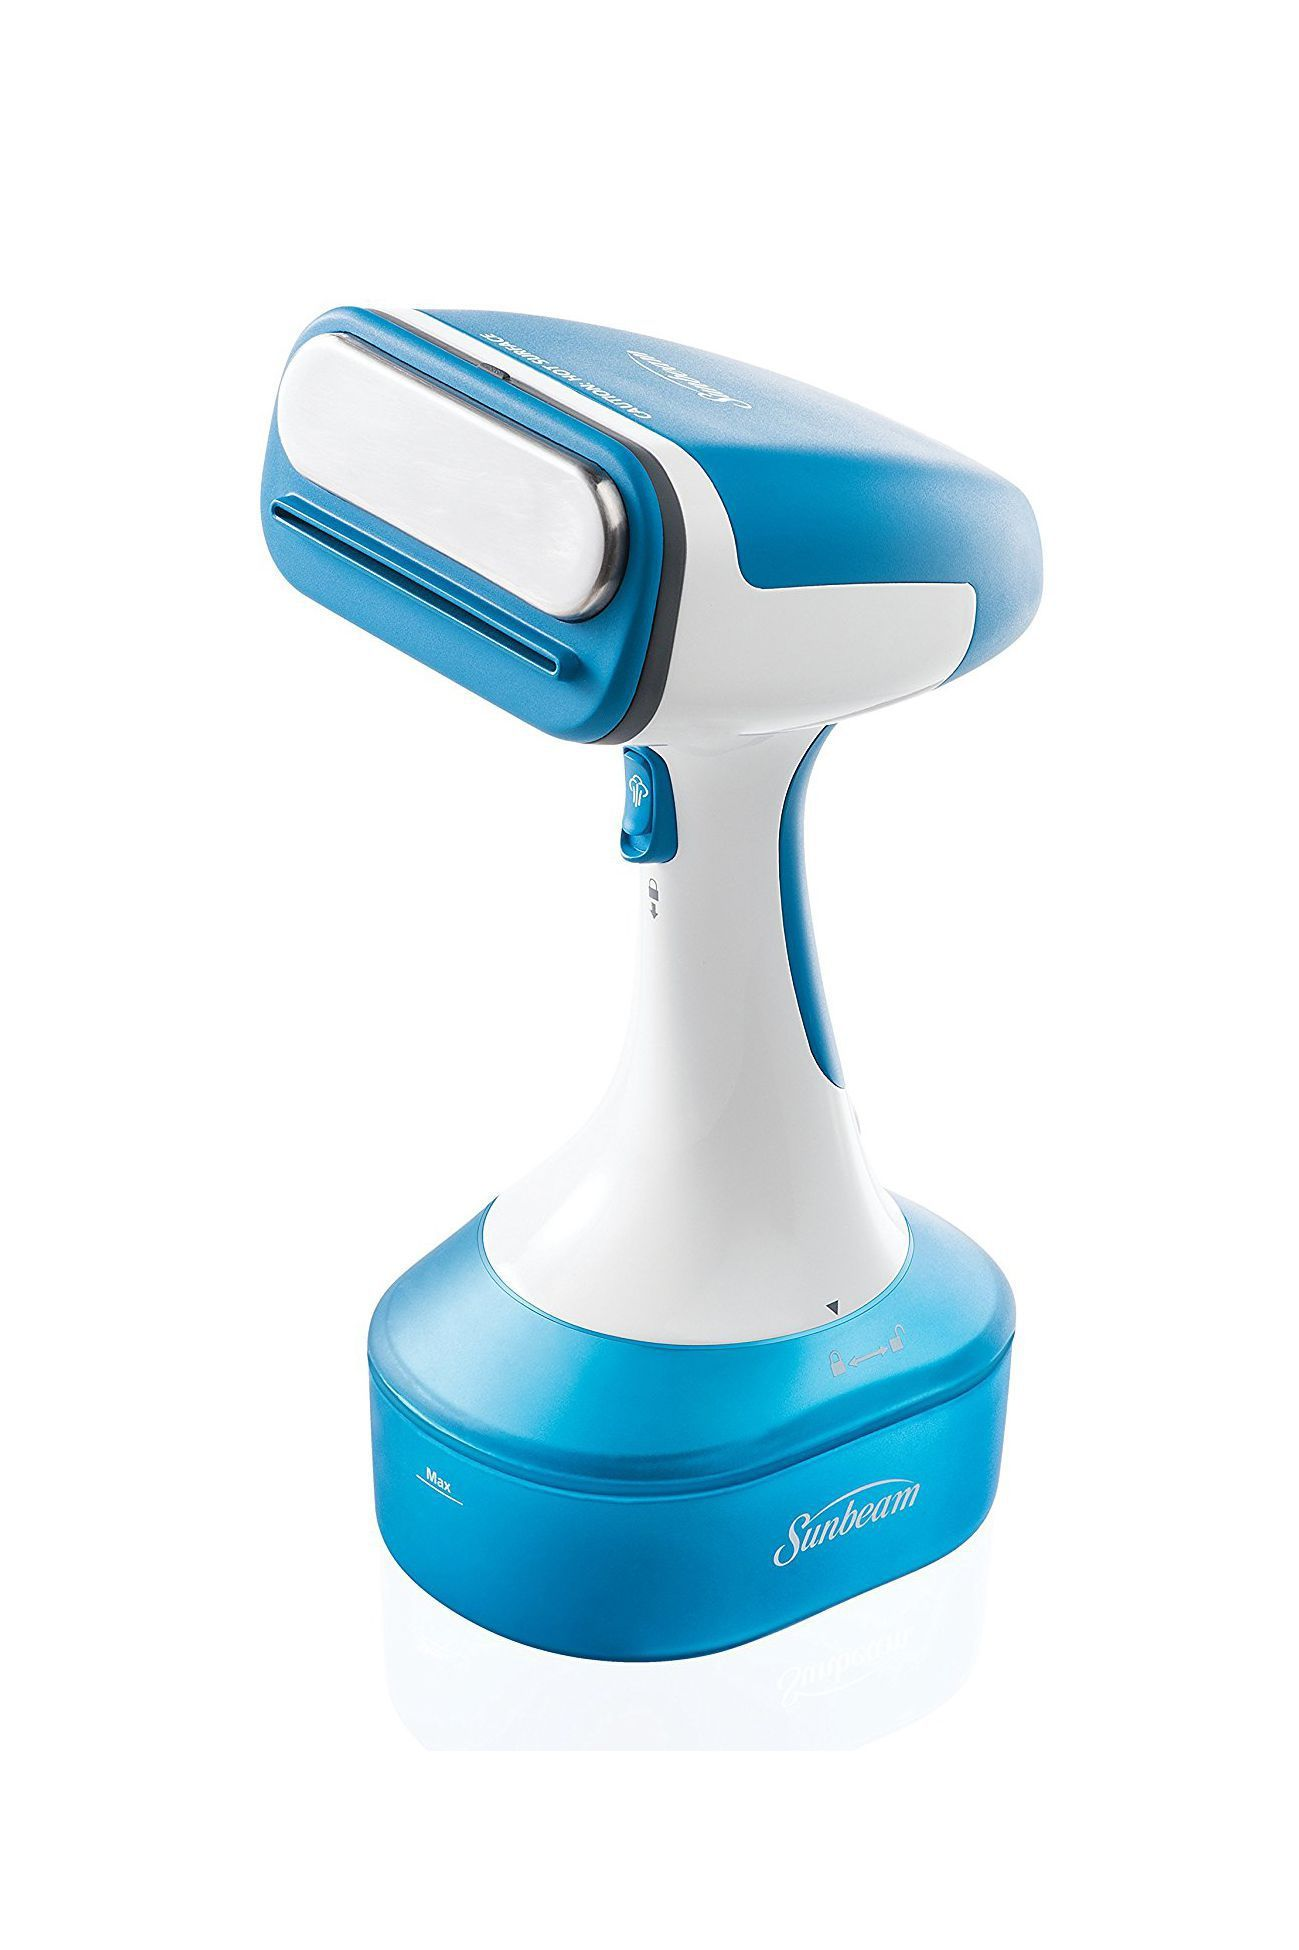 9 Best Clothes Steamers For 2021 Top Tested Garment Steamers